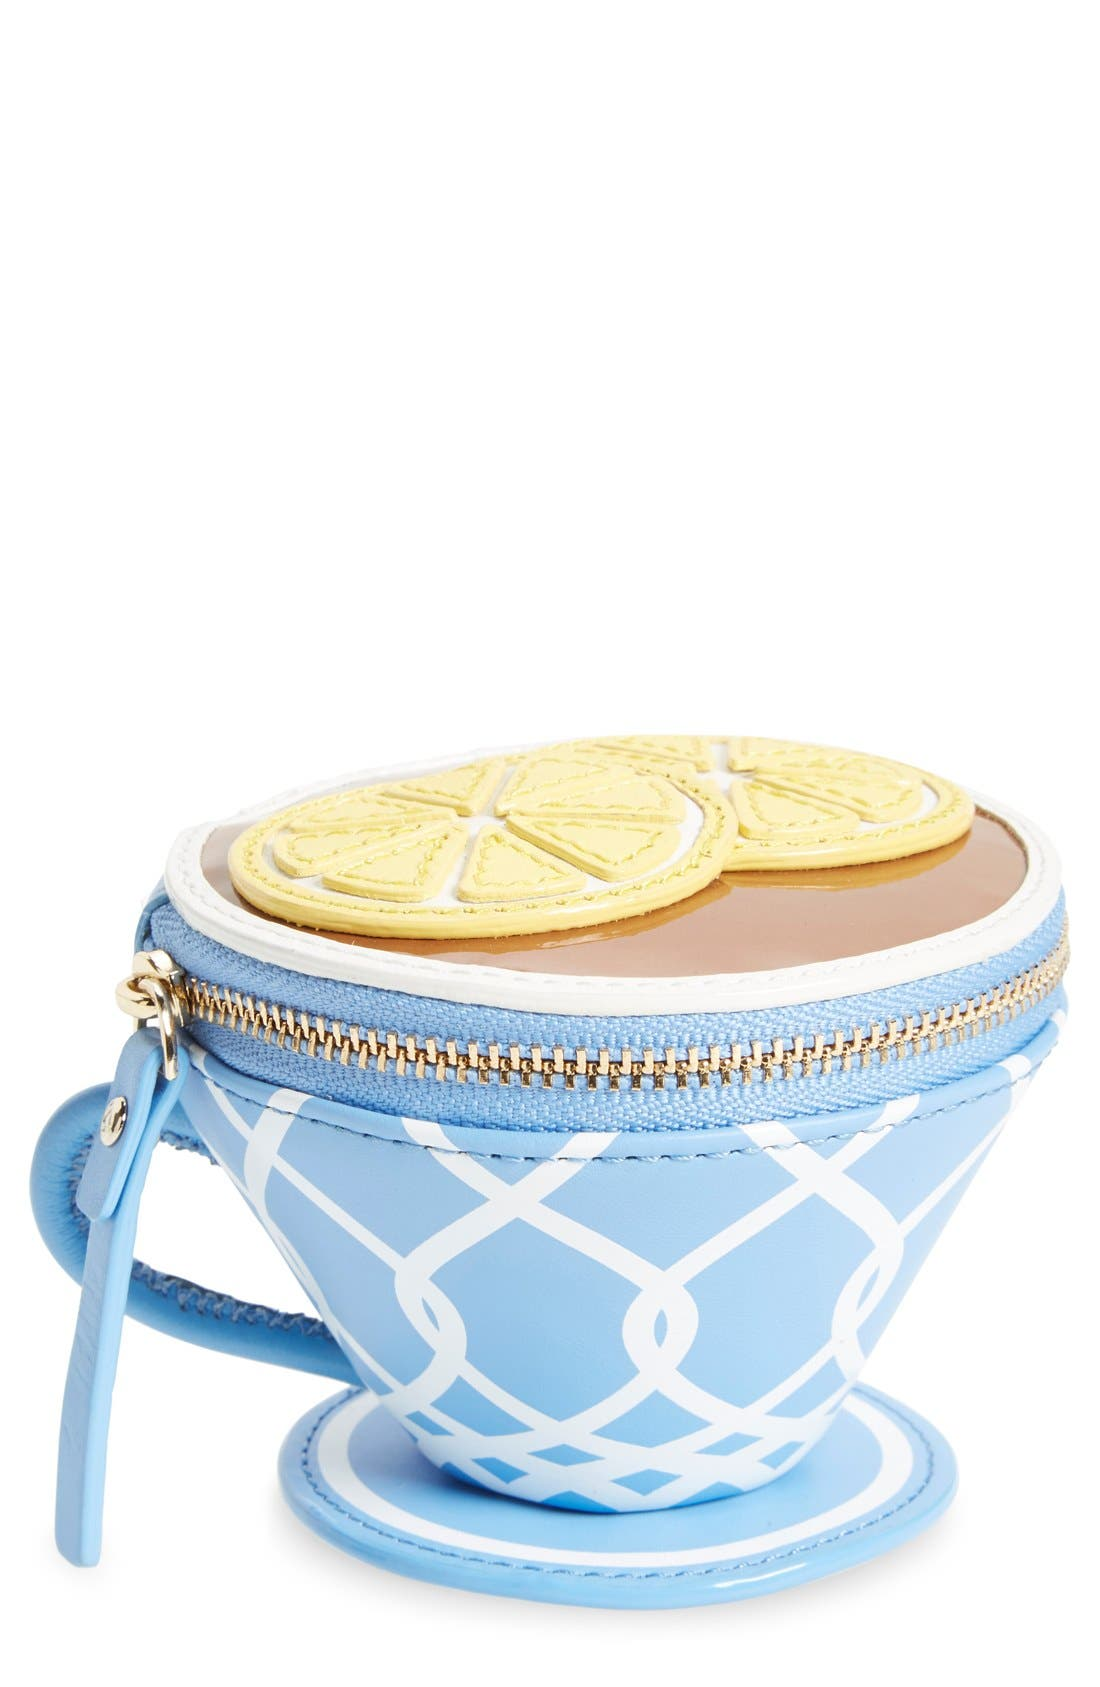 Alternate Image 1 Selected - kate spade new york 'tea cup' leather coin purse